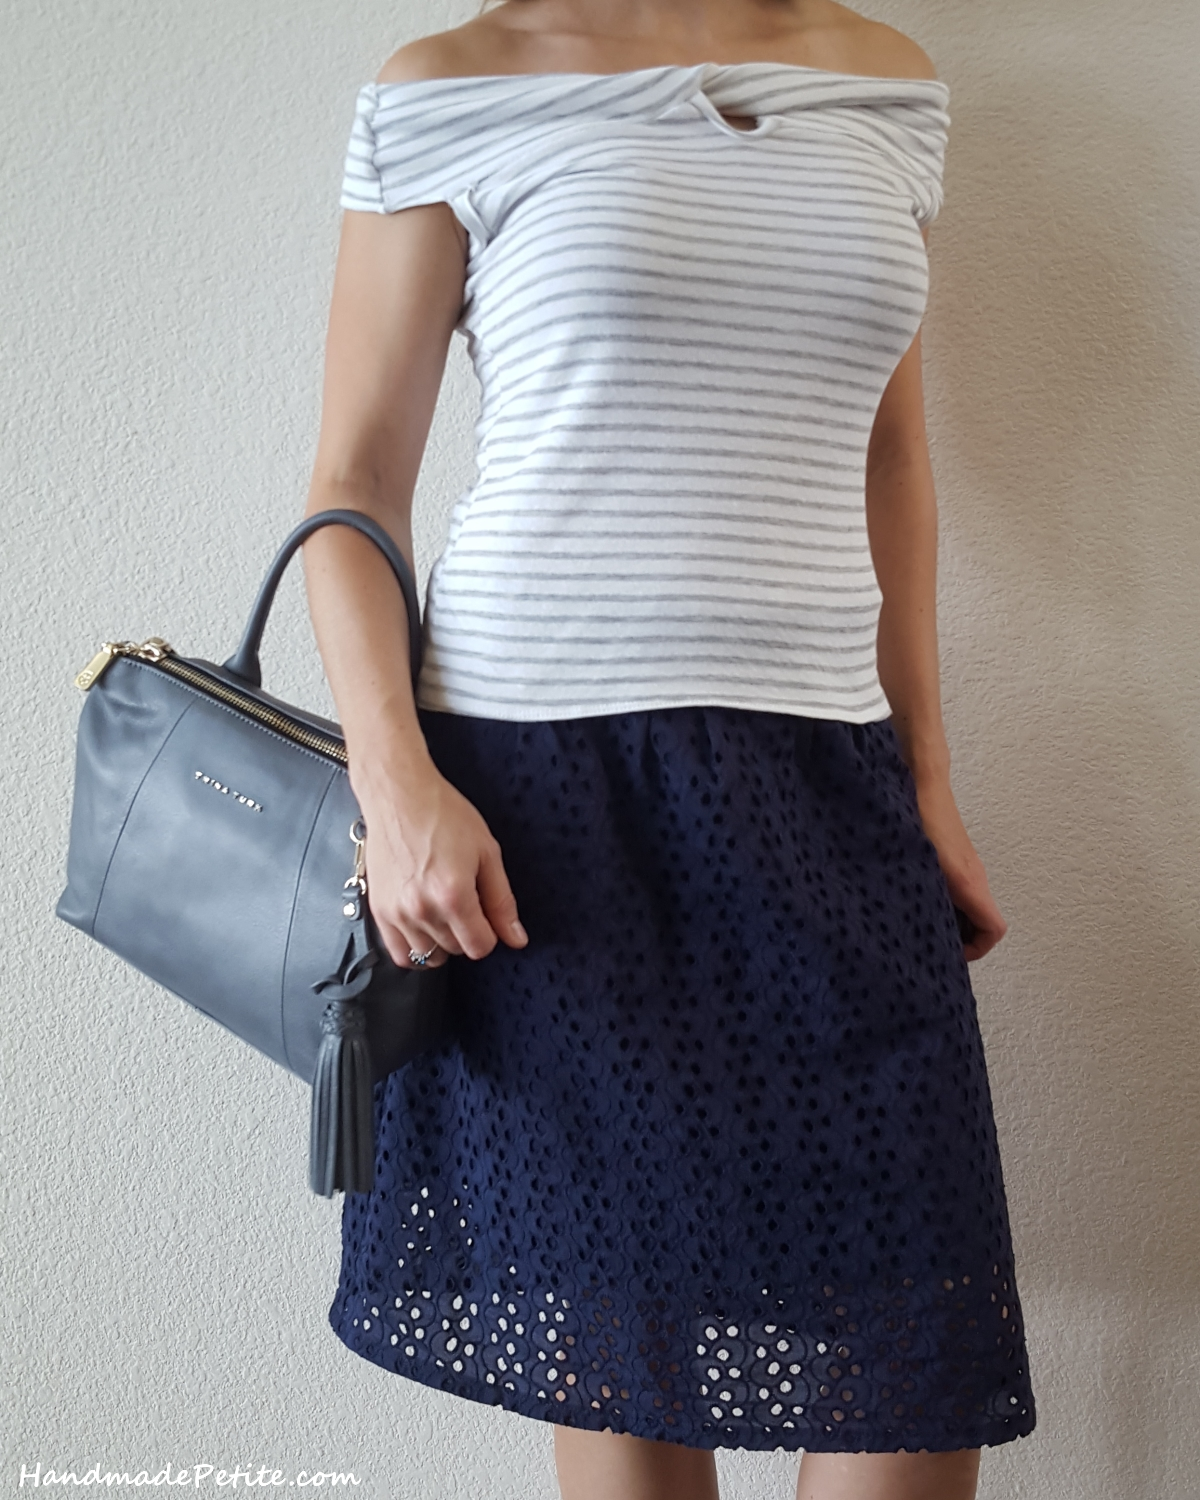 Handmade outfit - knit striped twist top and eyelet knee length skirt